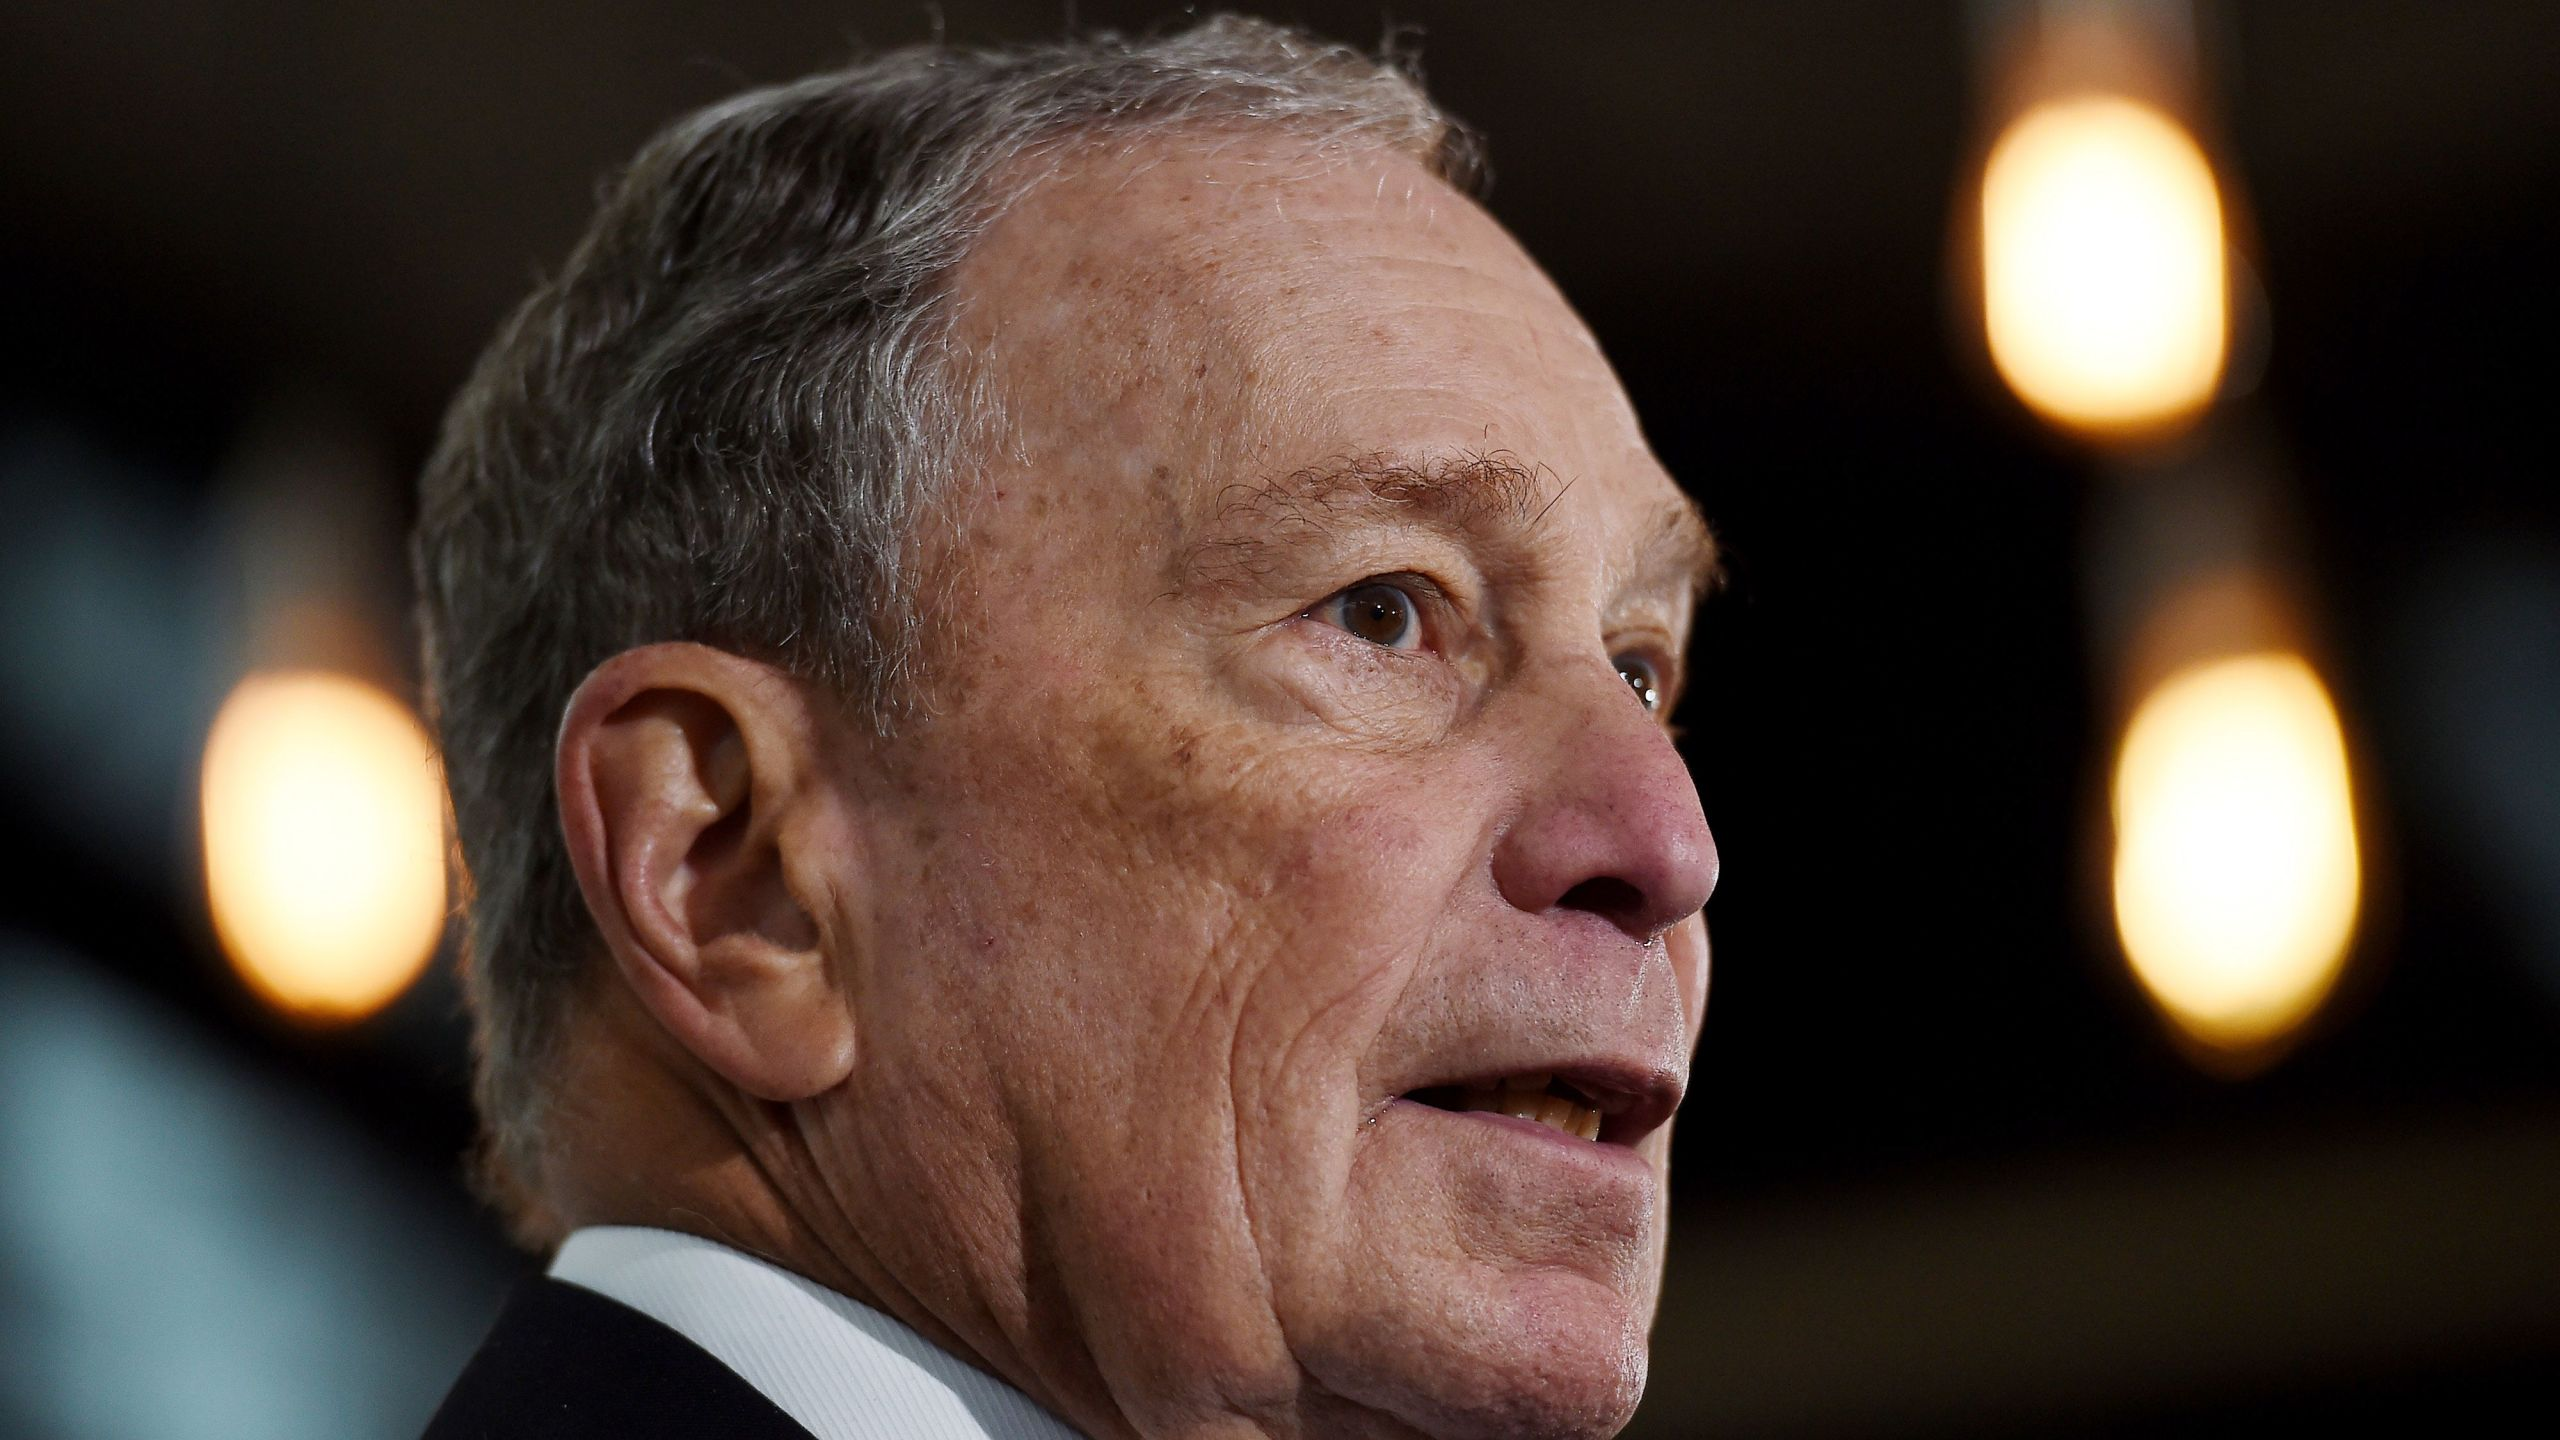 Former New York Mayor and Democratic presidential candidate Michael Bloomberg speaks about his plan for clean energy during a campaign event in Alexandria, Virginia, on Dec. 13, 2019. (Credit: OLIVIER DOULIERY/AFP via Getty Images)